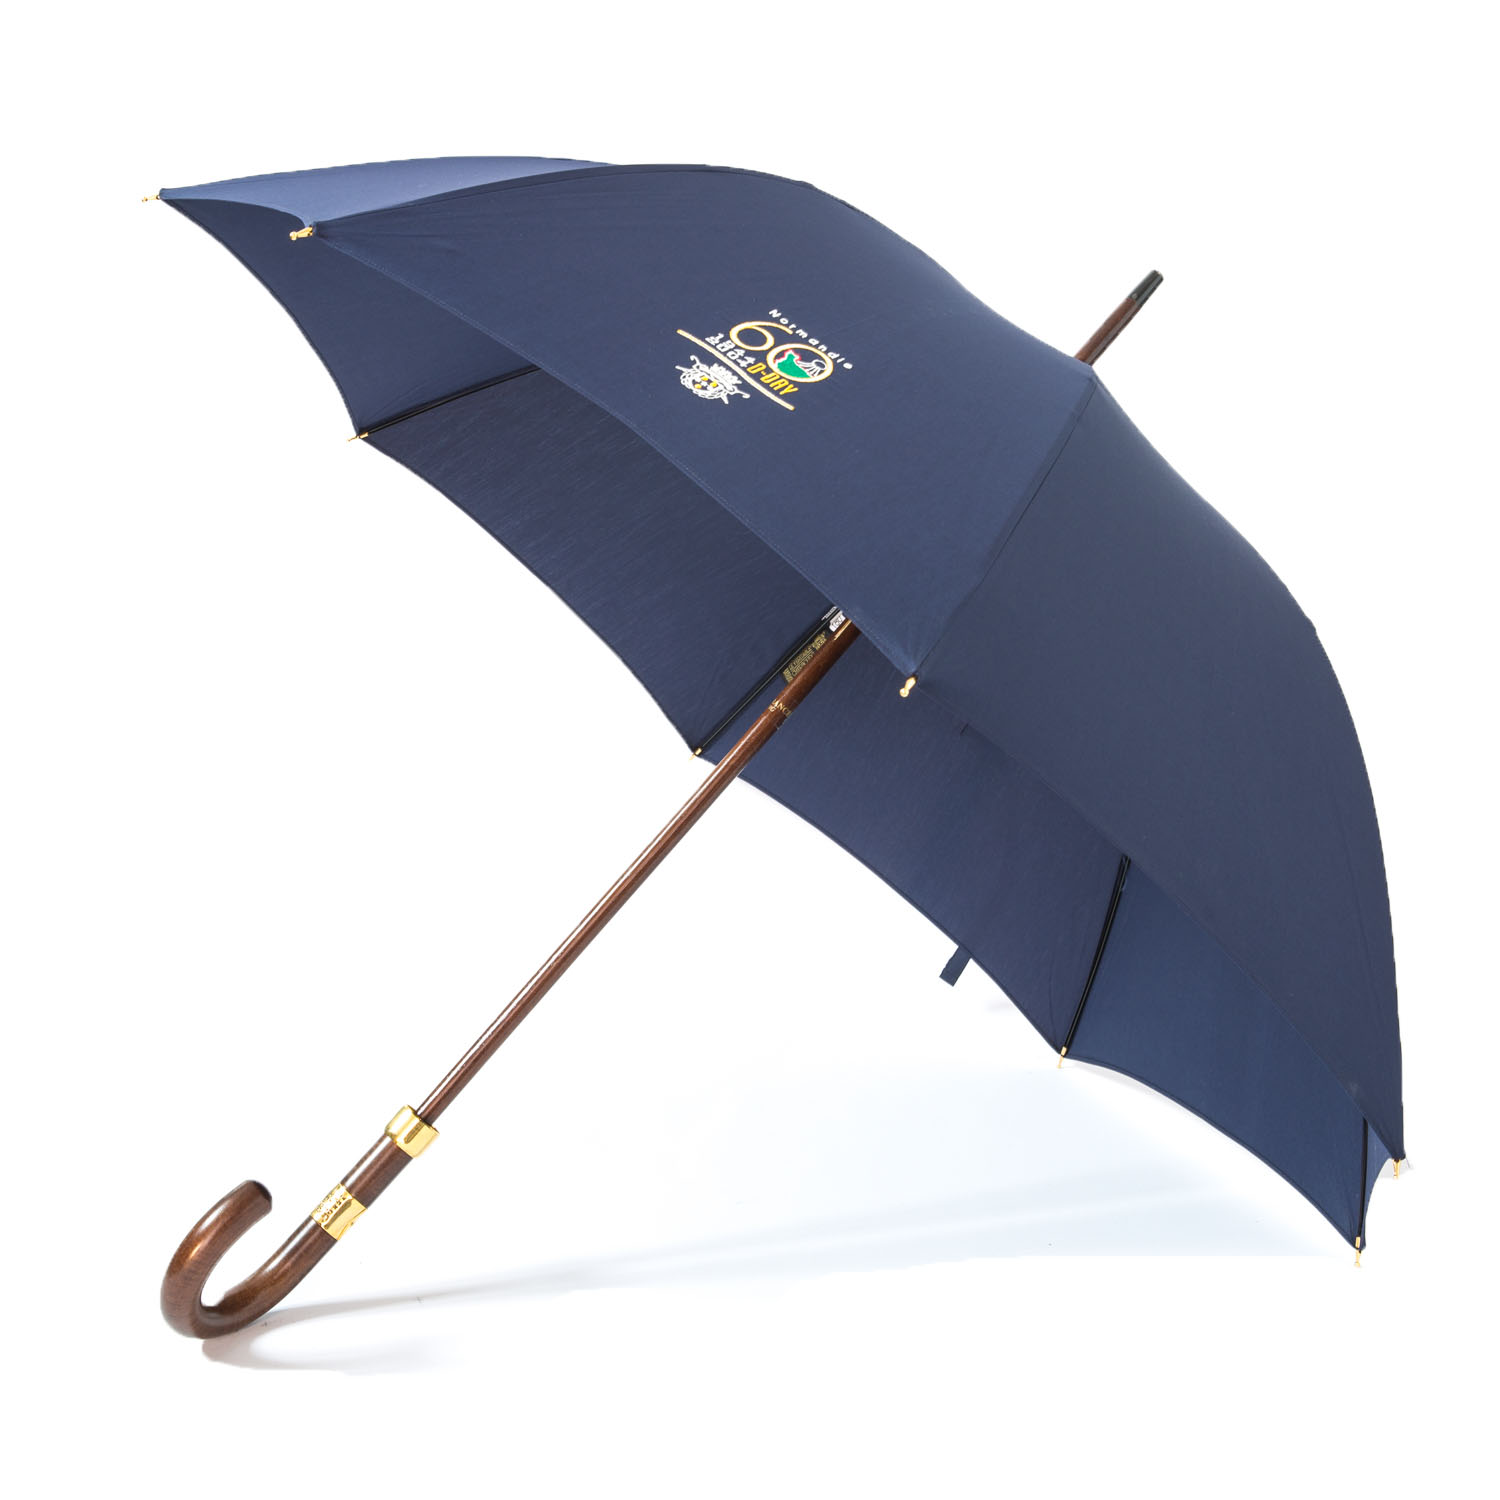 Le D-day parapluie collector en bleu